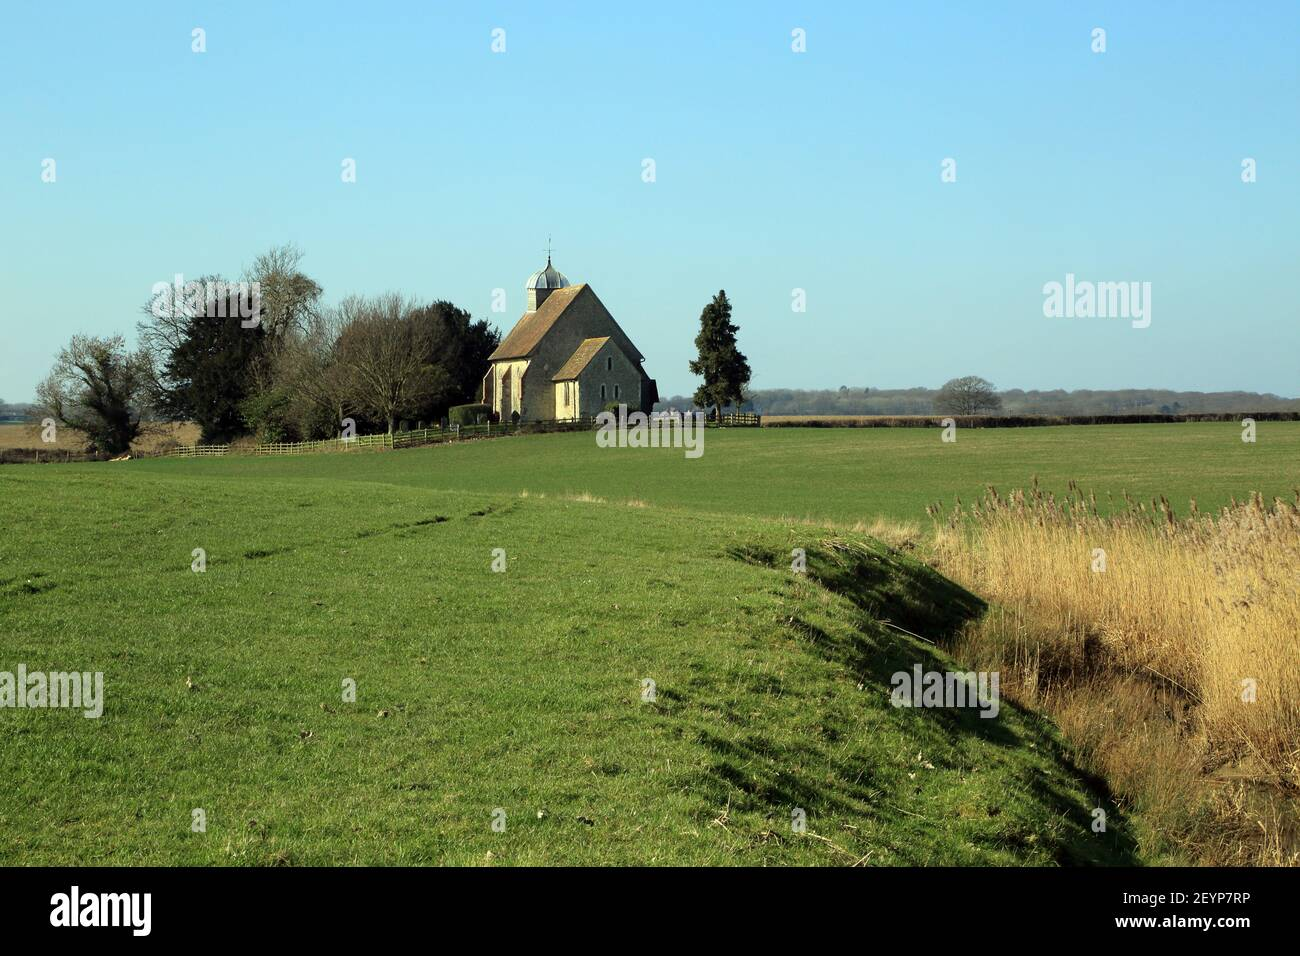 View of Saint Rumwold's church from the banks of the Royal Military Canal, Bonnington near Ashford in Kent, England, United  Kingdom Stock Photo